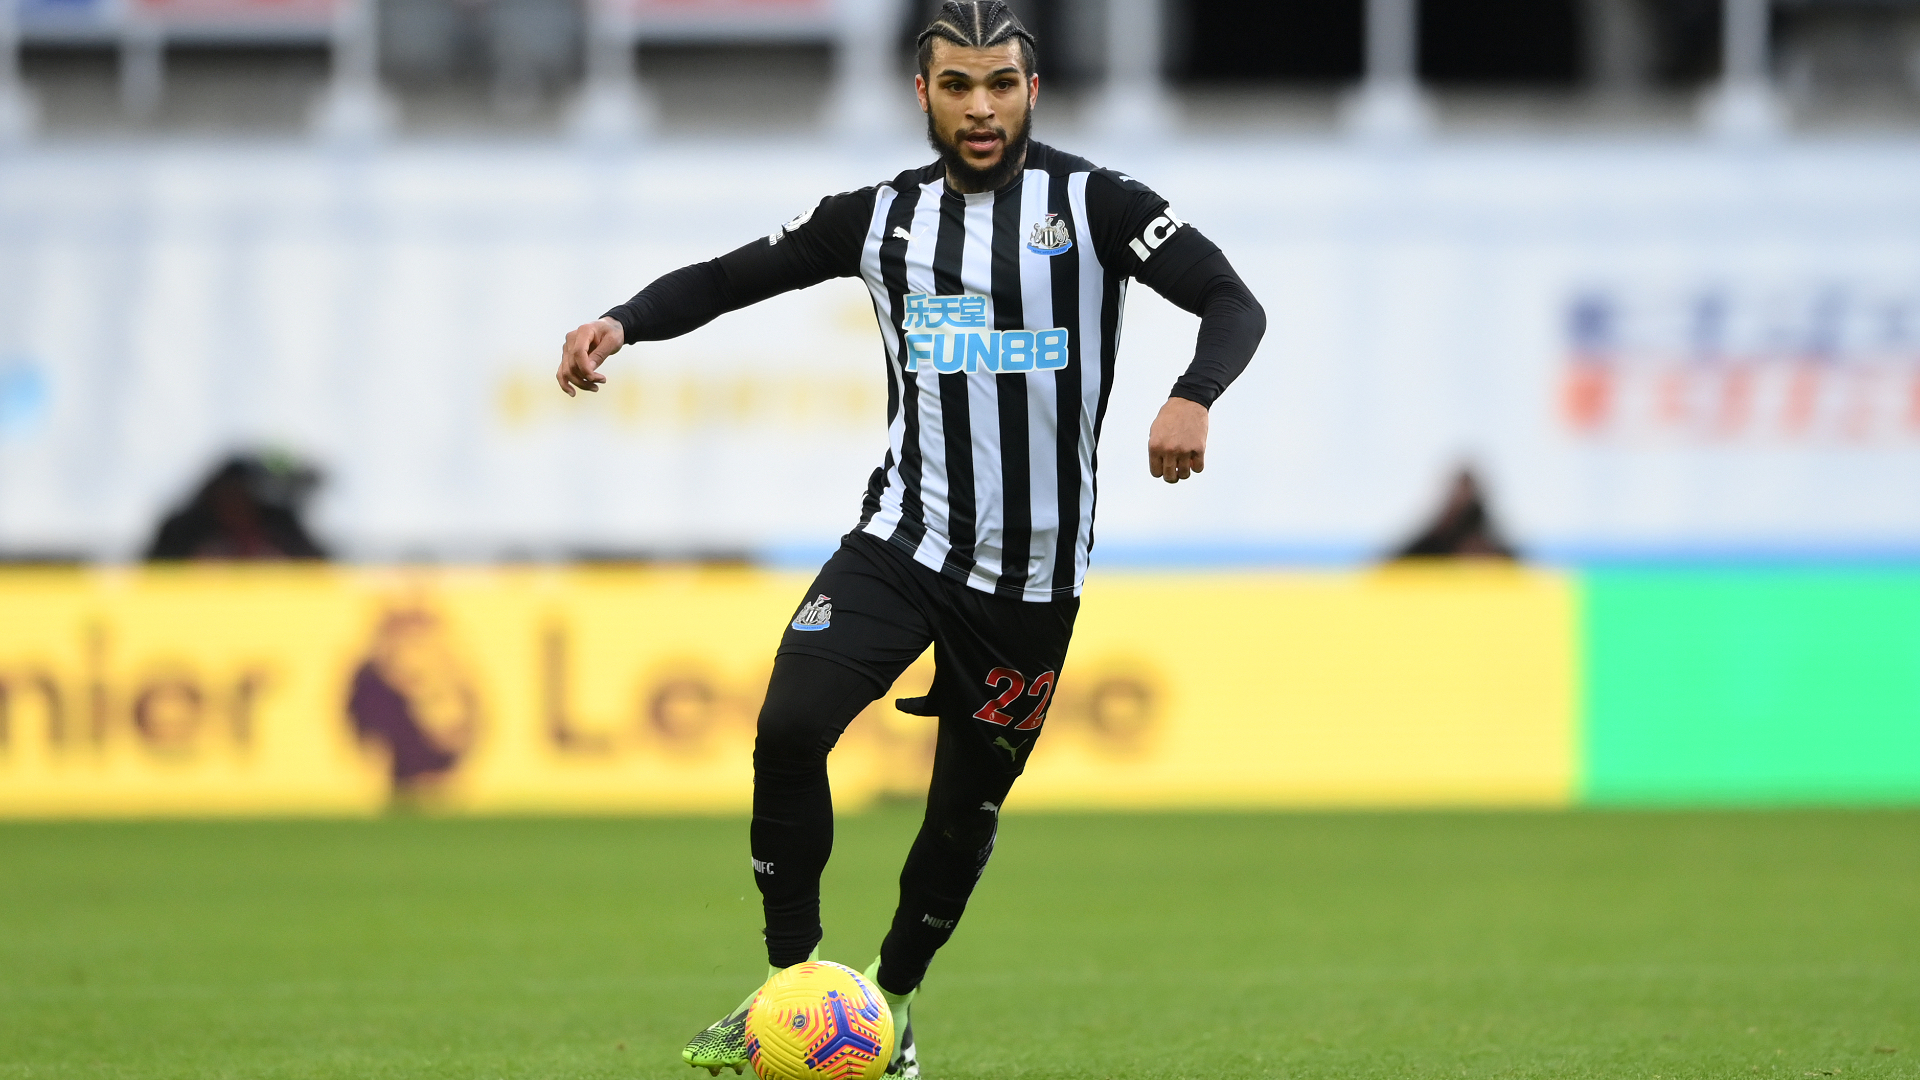 USMNT defender Yedlin joins Galatasaray from Newcastle